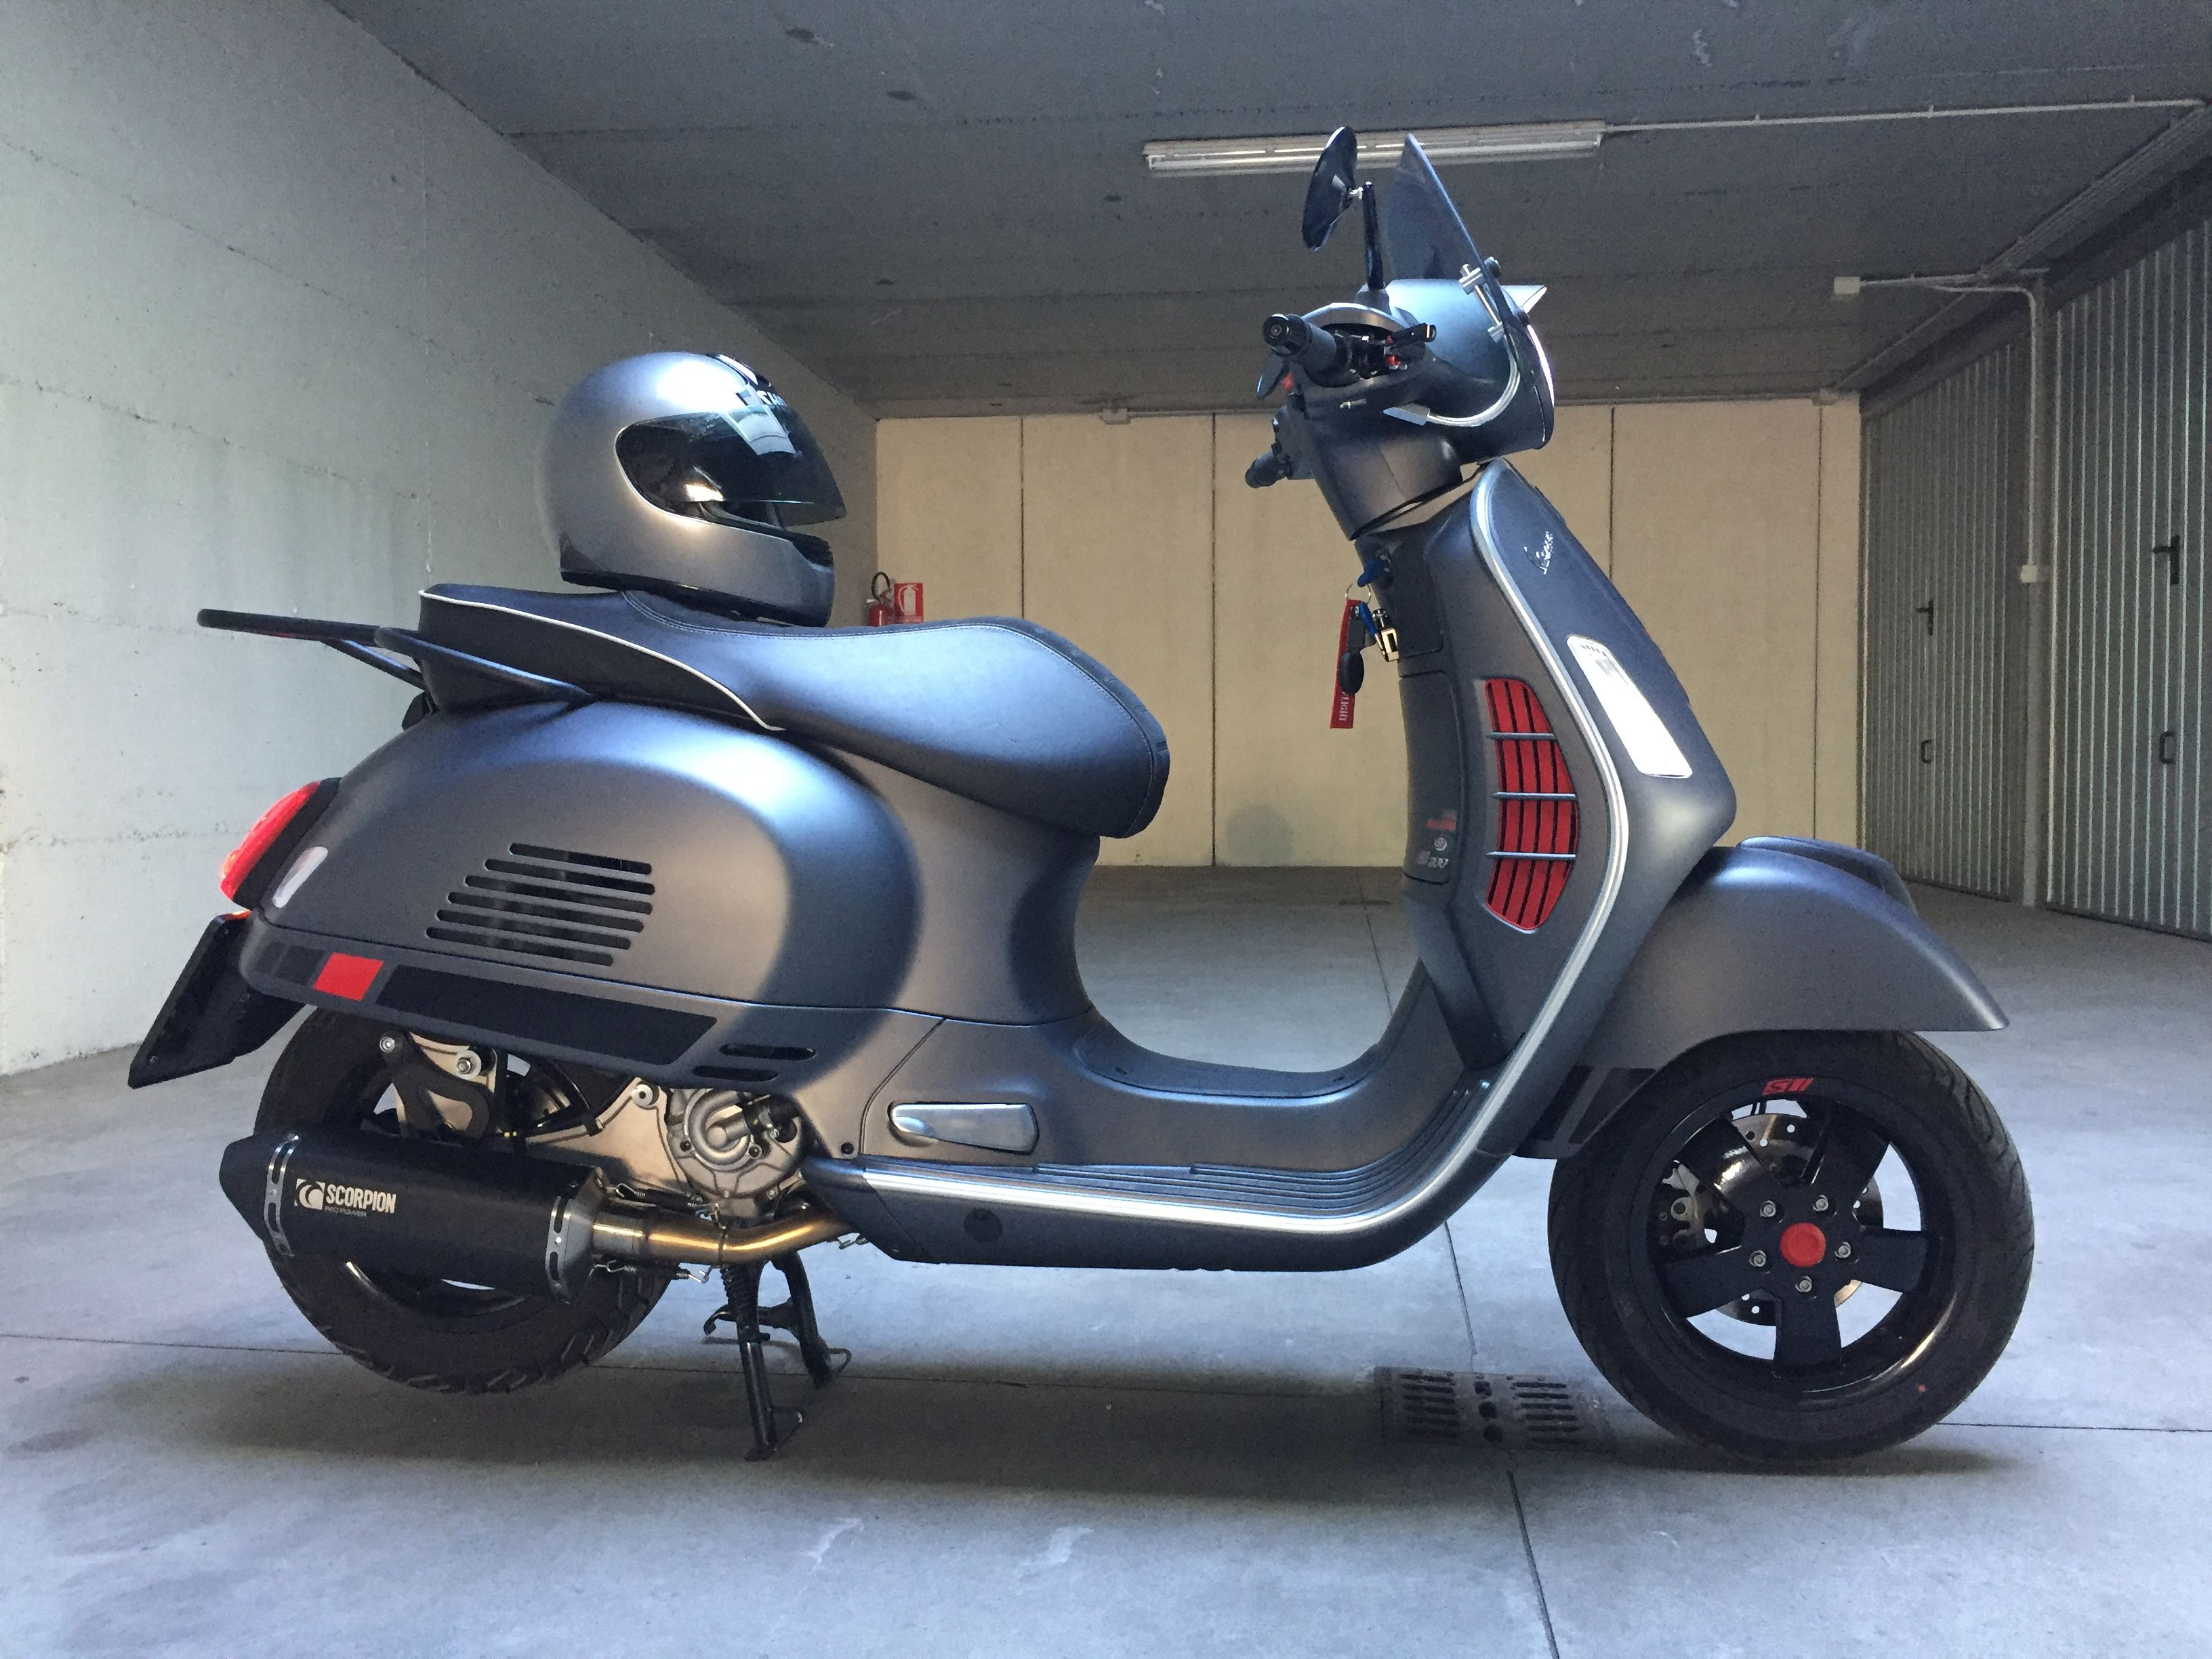 vespa gts 300ss custom vespa vespa vespa 300 vespa. Black Bedroom Furniture Sets. Home Design Ideas